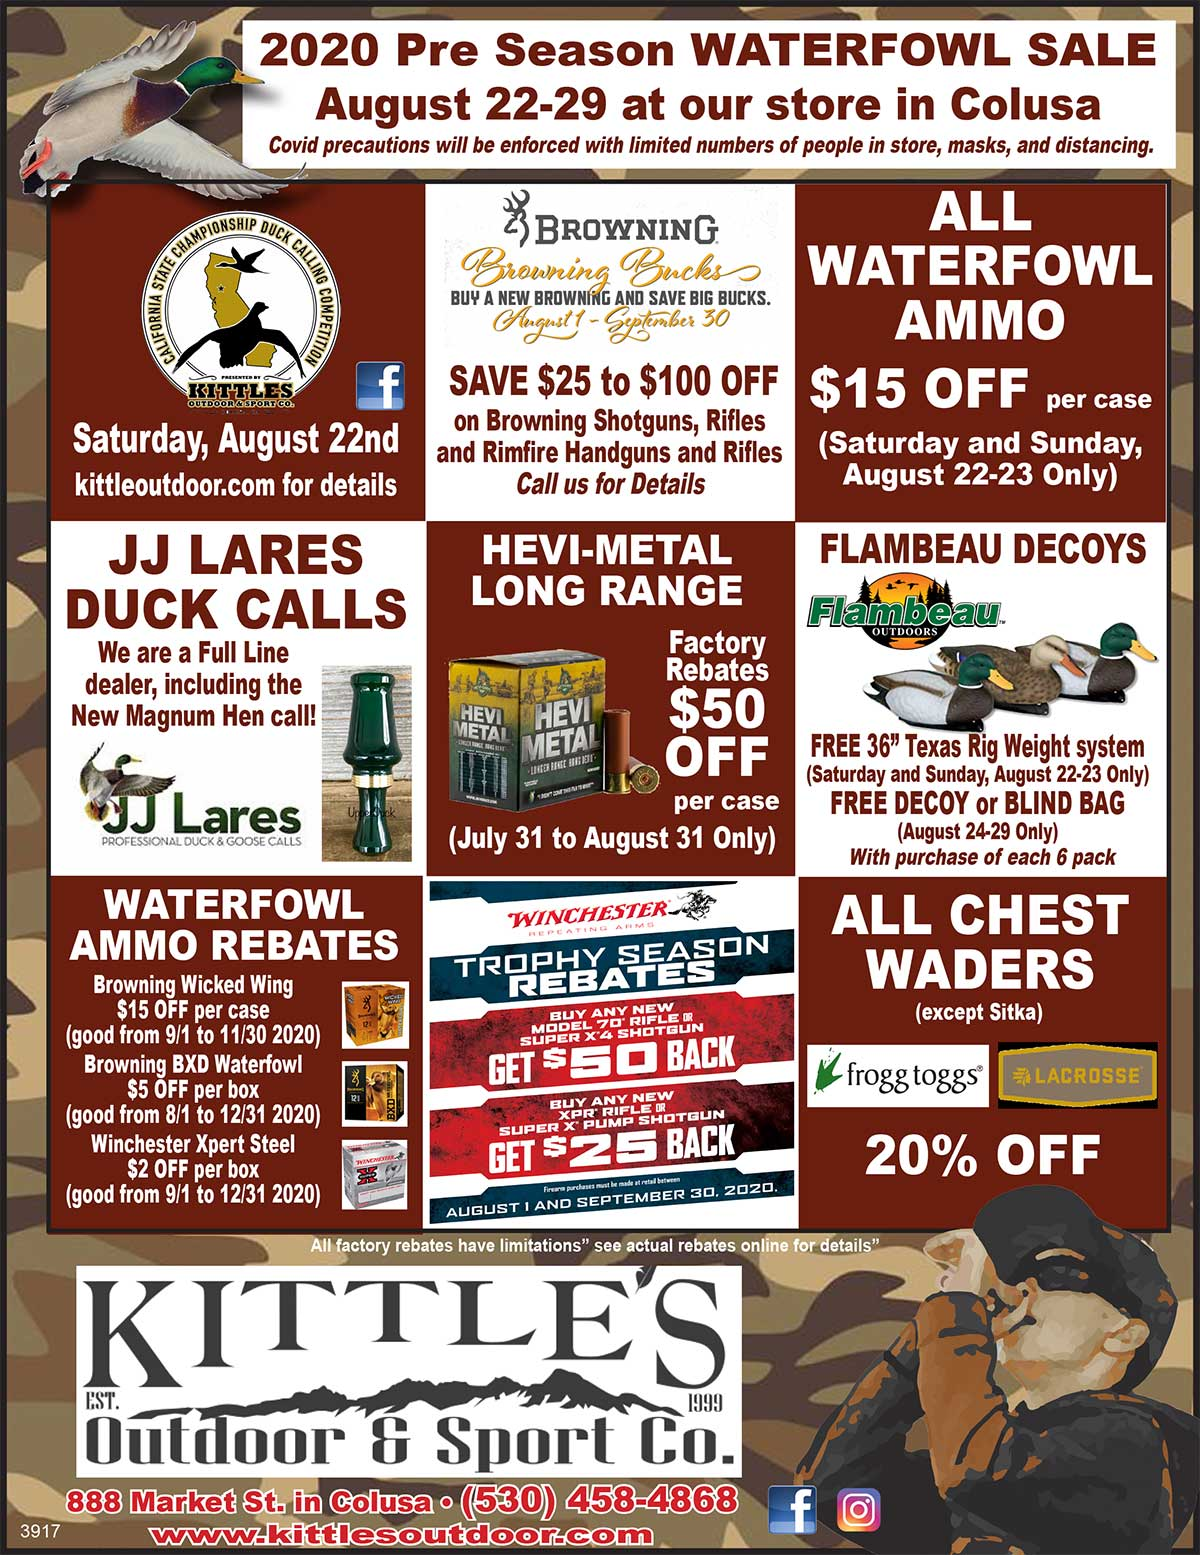 2020 Pre Season WATERFOWL SALE